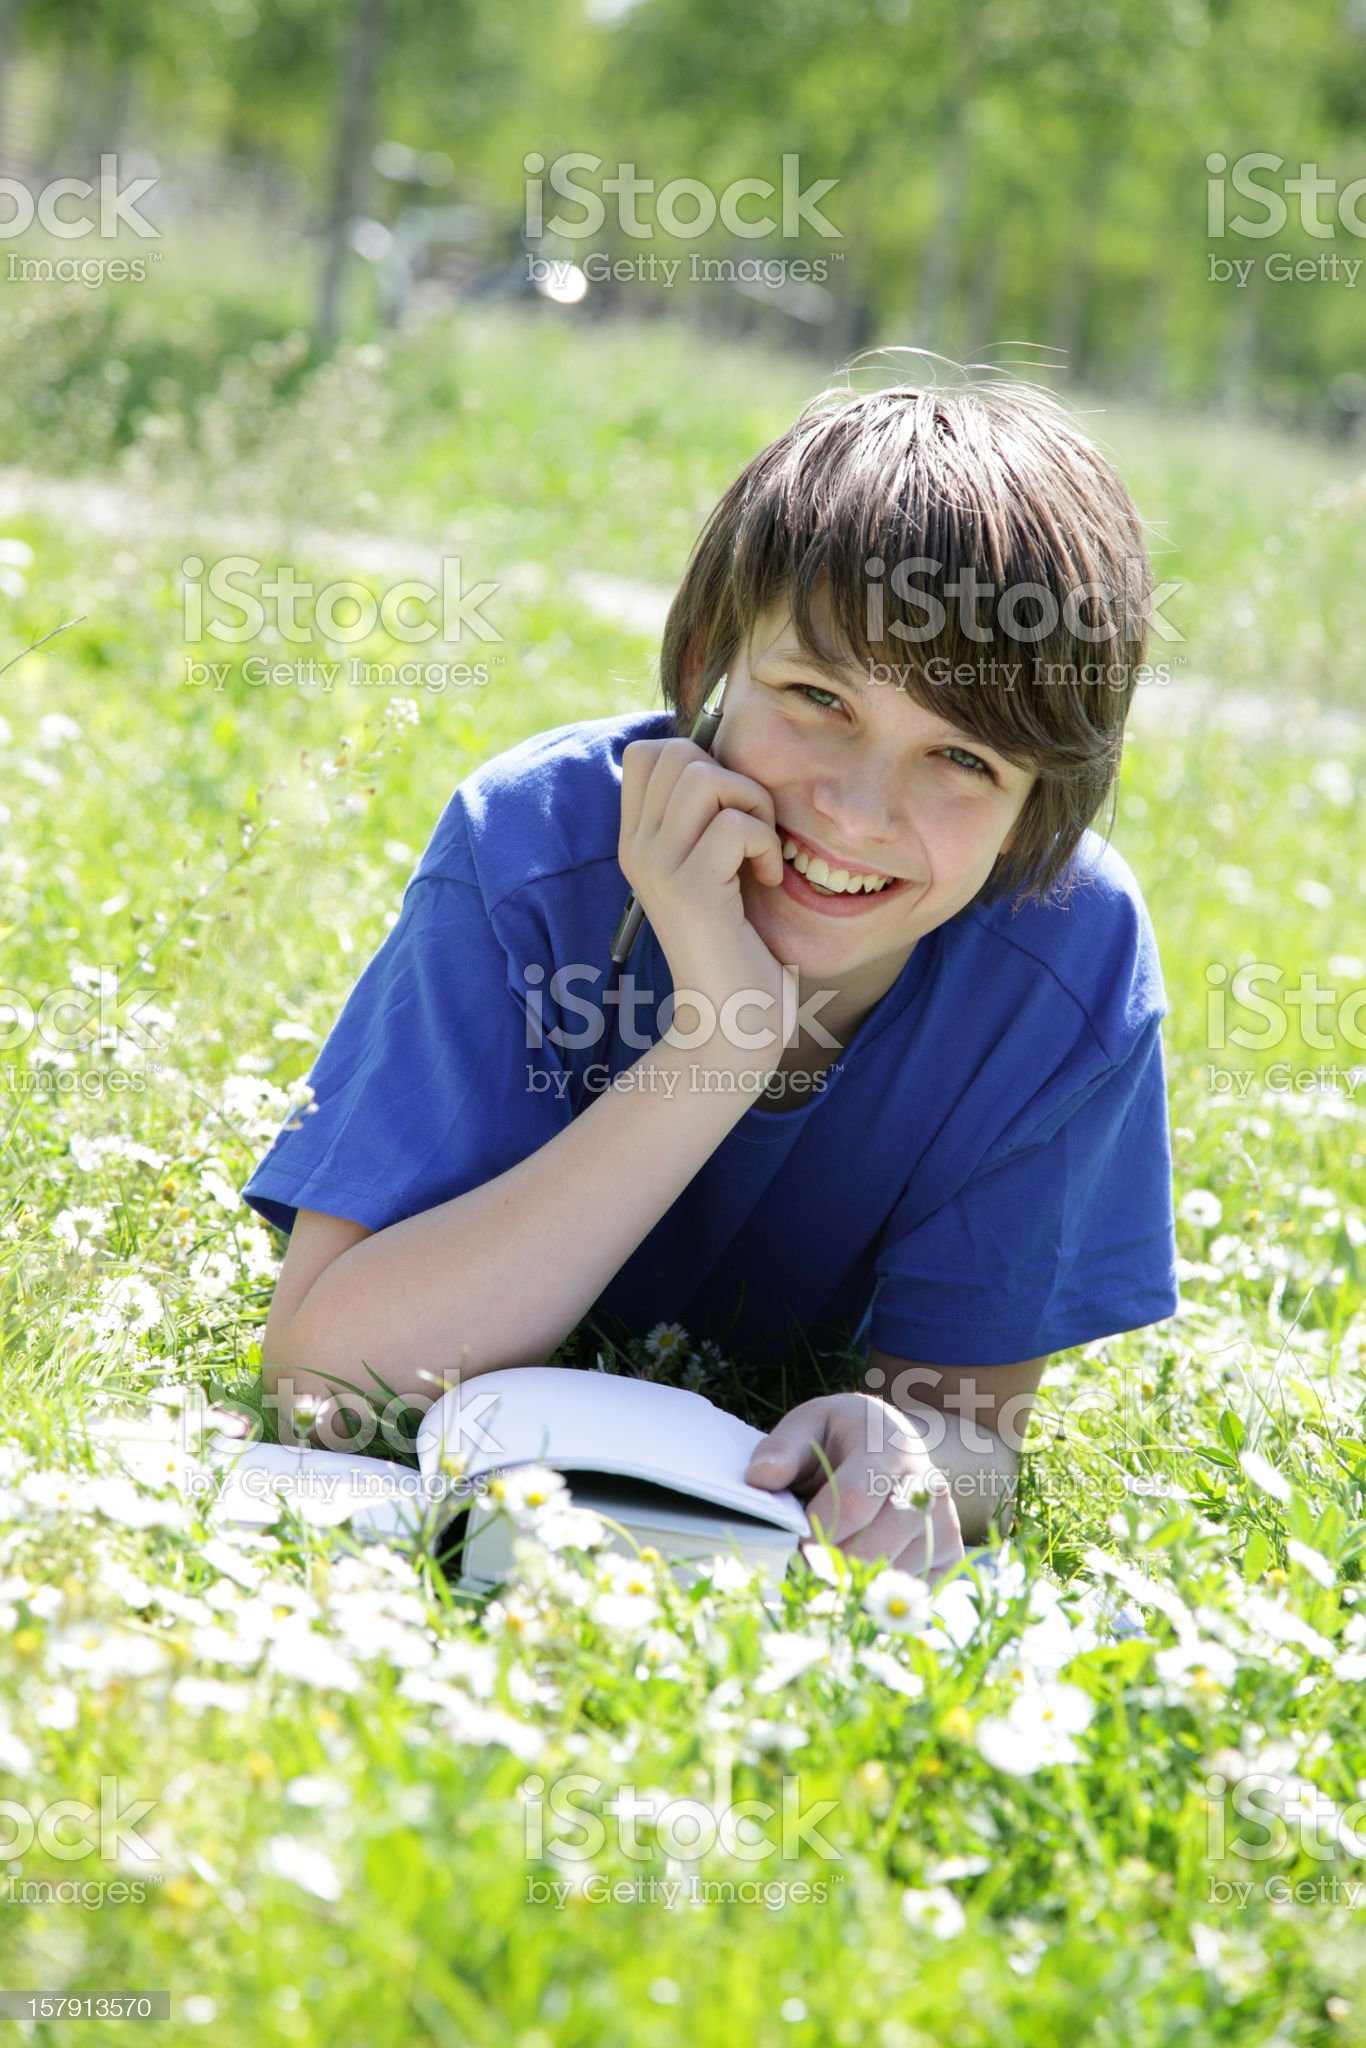 Boy studying in Grass royalty-free stock photo